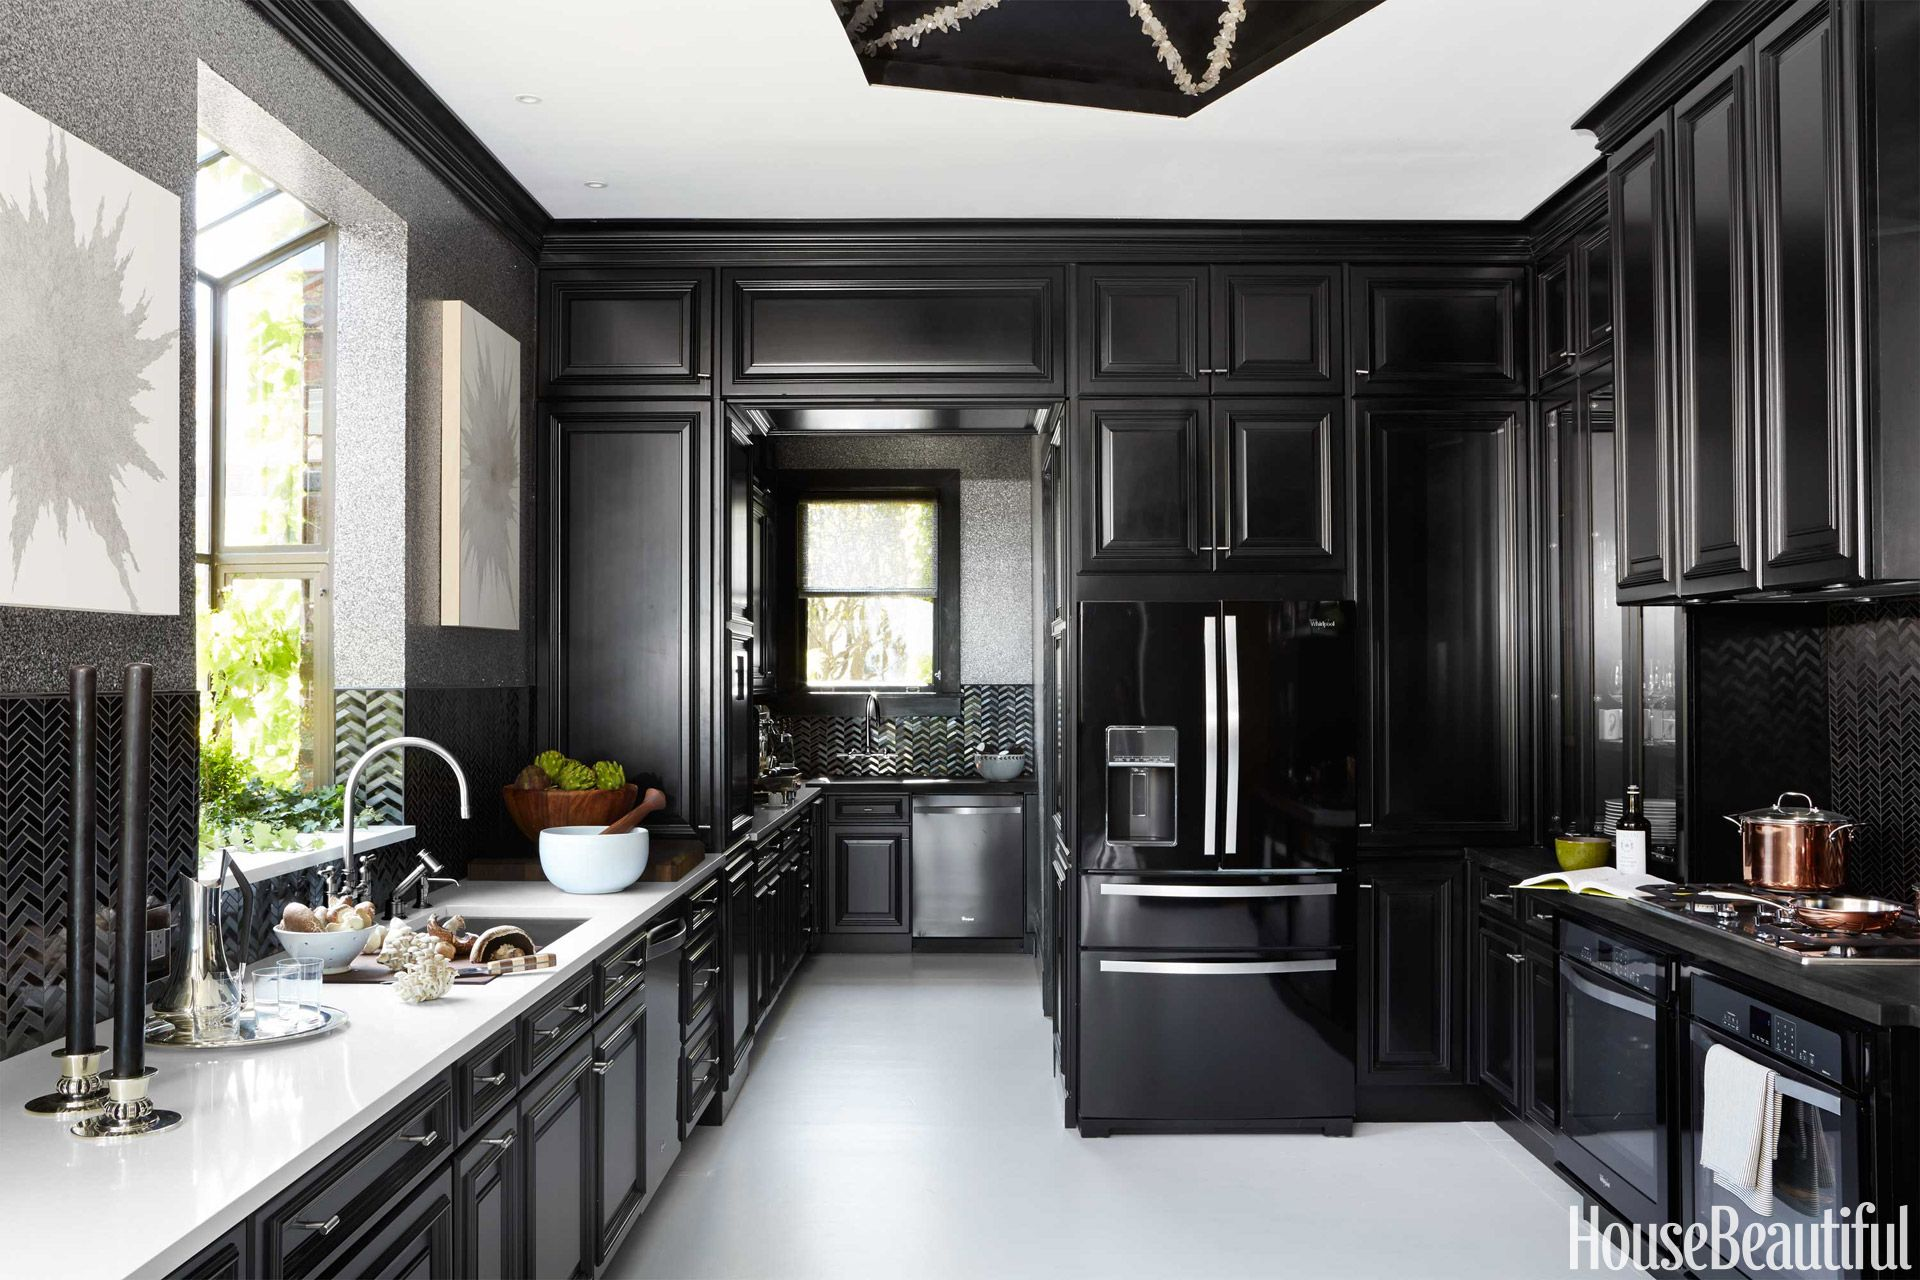 Best The 2014 Kitchen Of The Year Kitchen Inspirations 640 x 480